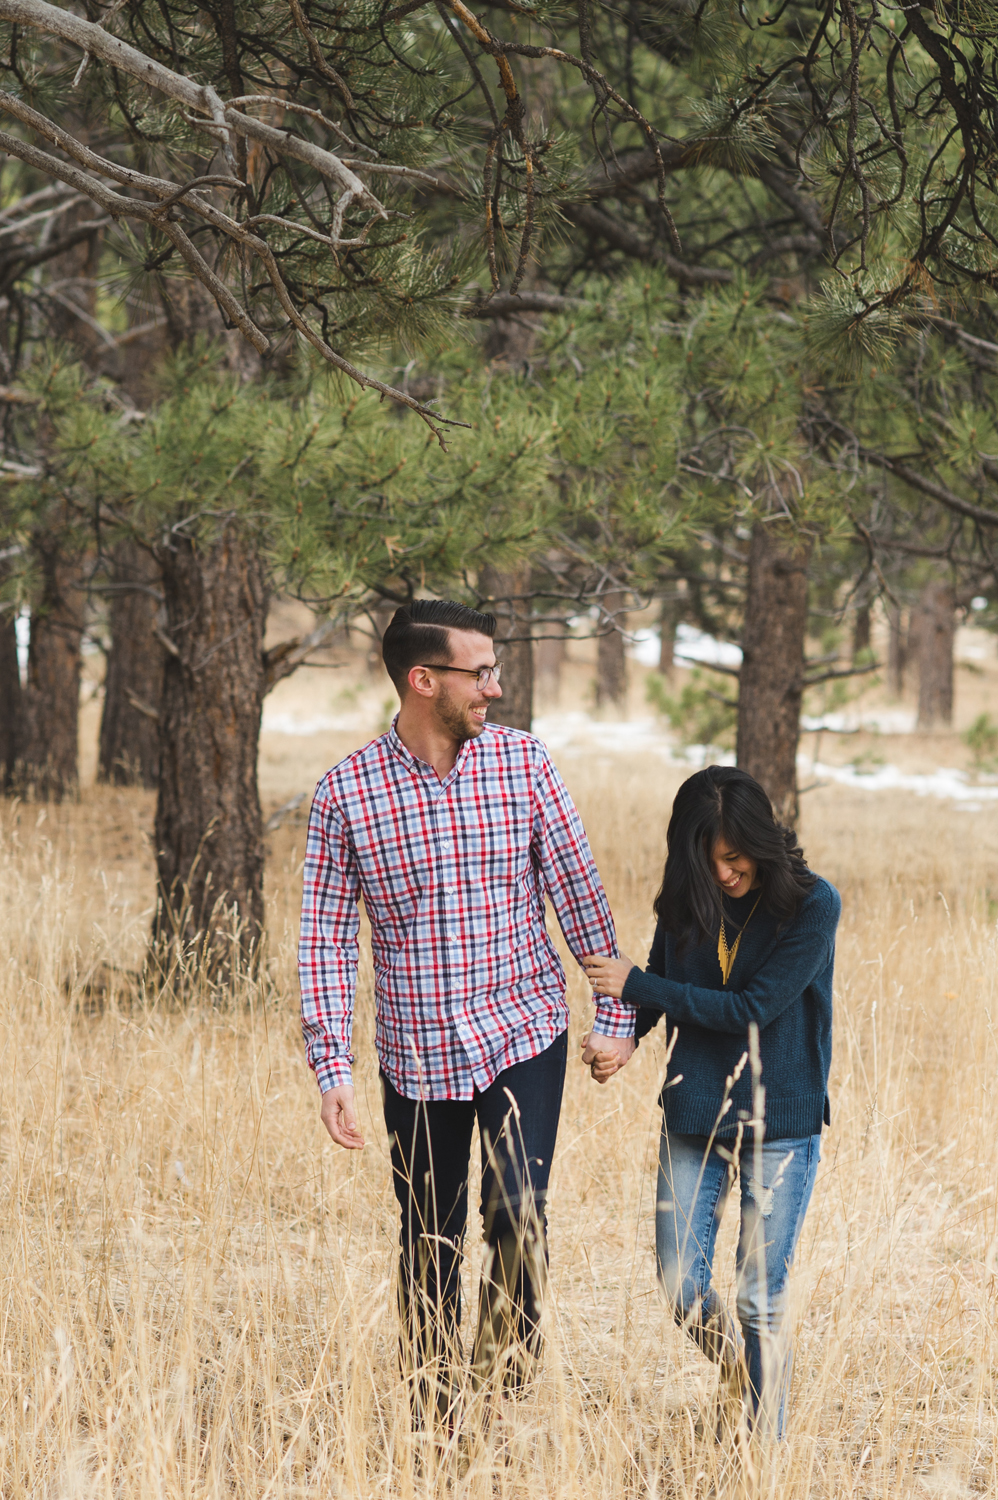 TiffanyandMark_Engaged_0157_squarespace.jpg